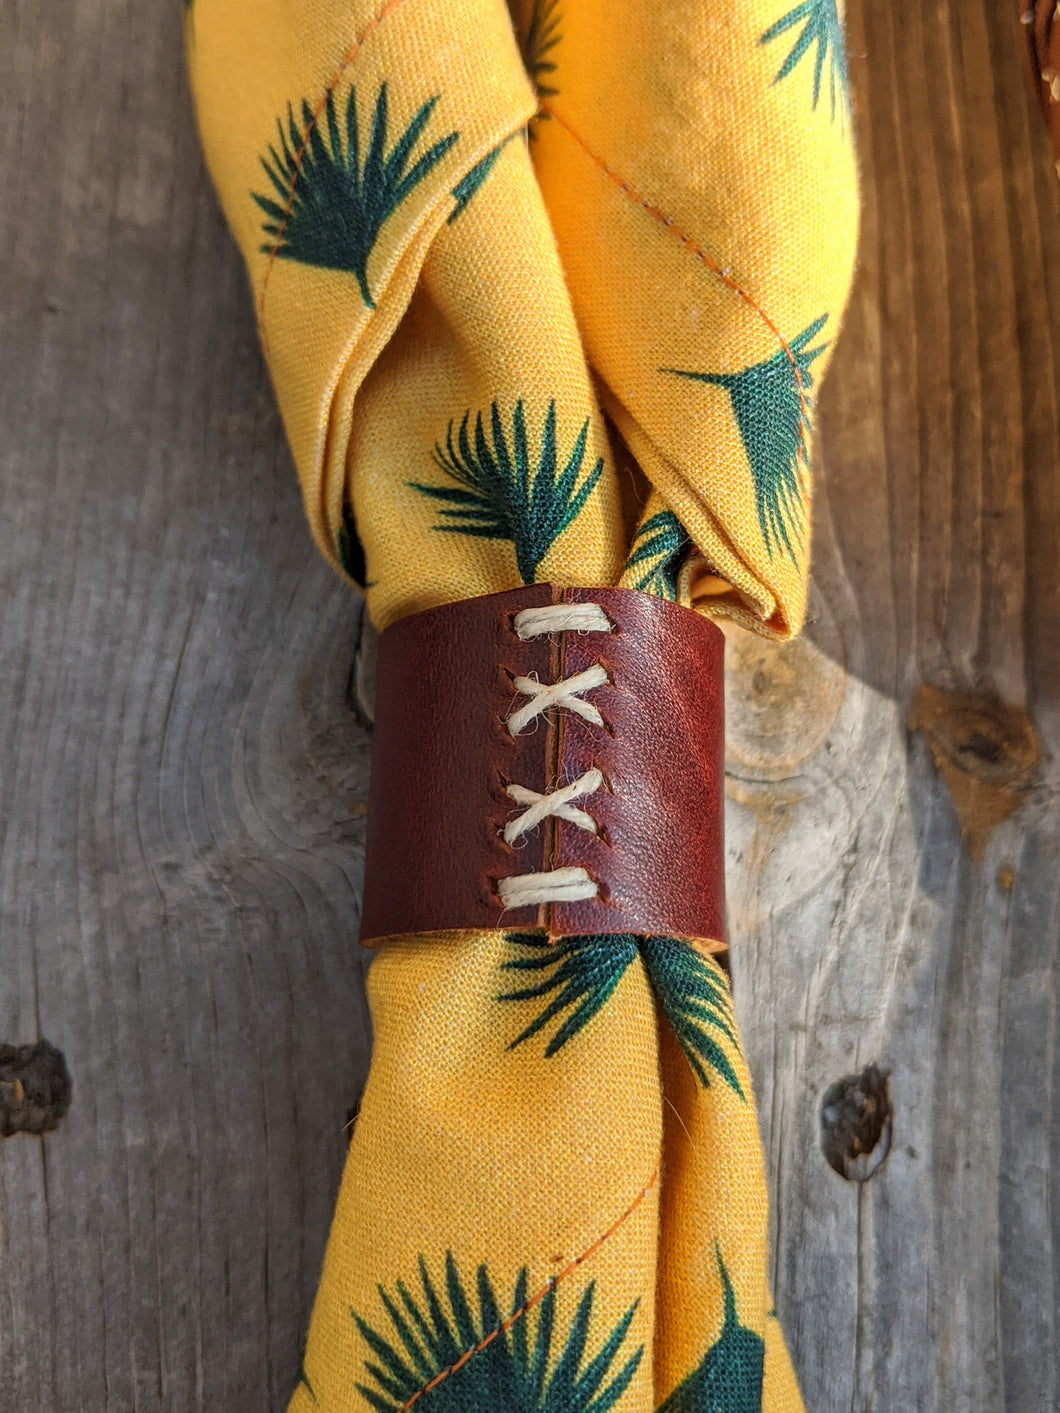 Desert Dreaming Collection: Kerchief + Leather Slide